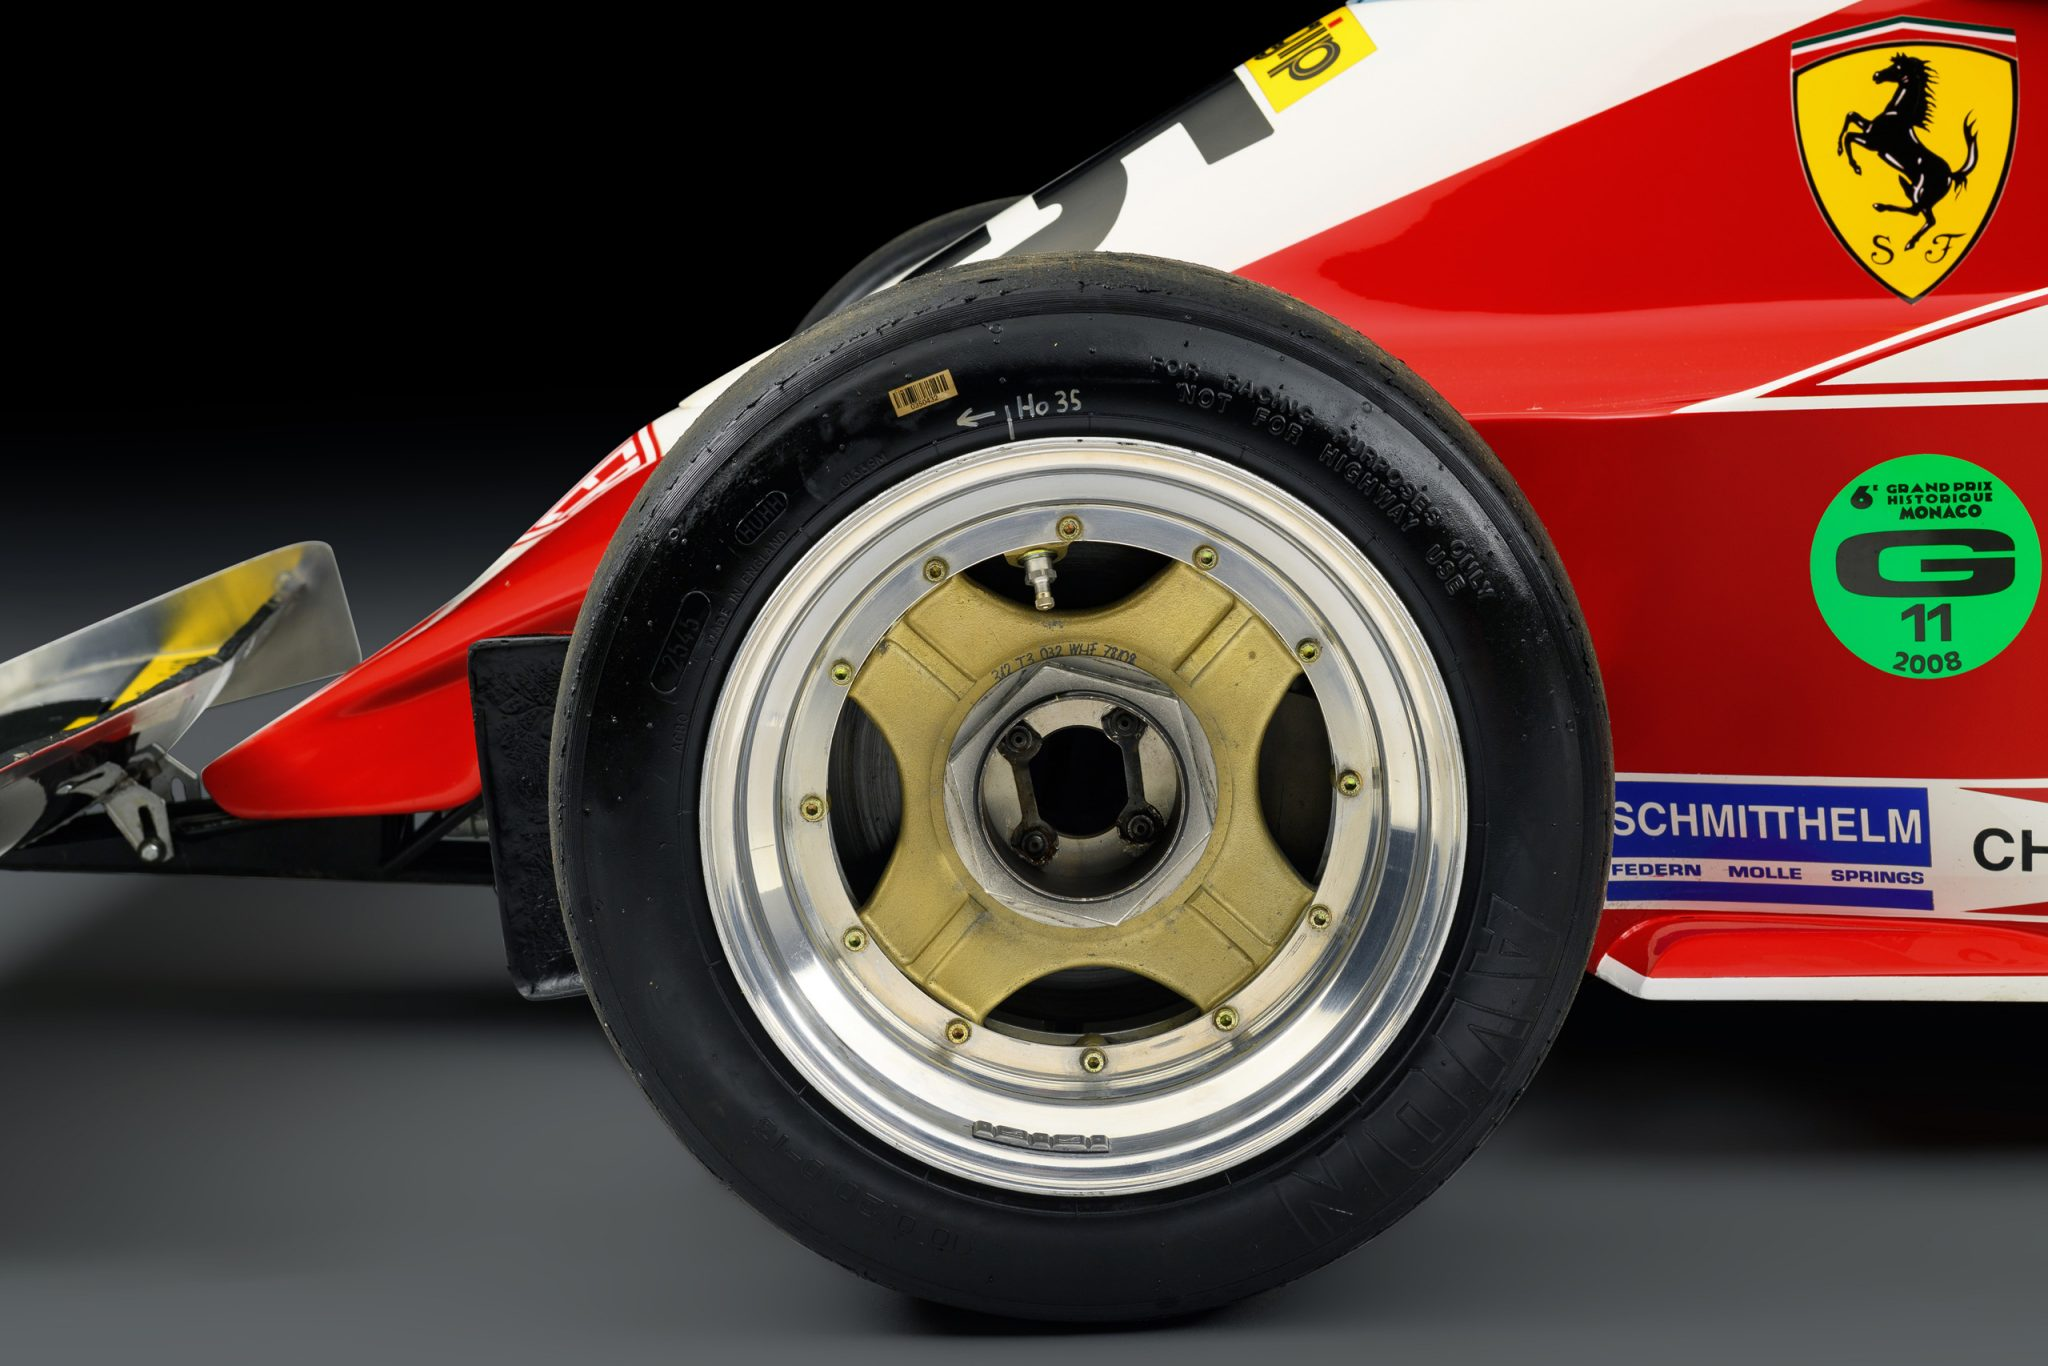 Ferrari-312-T3-Formula-One-Car-8.jpg